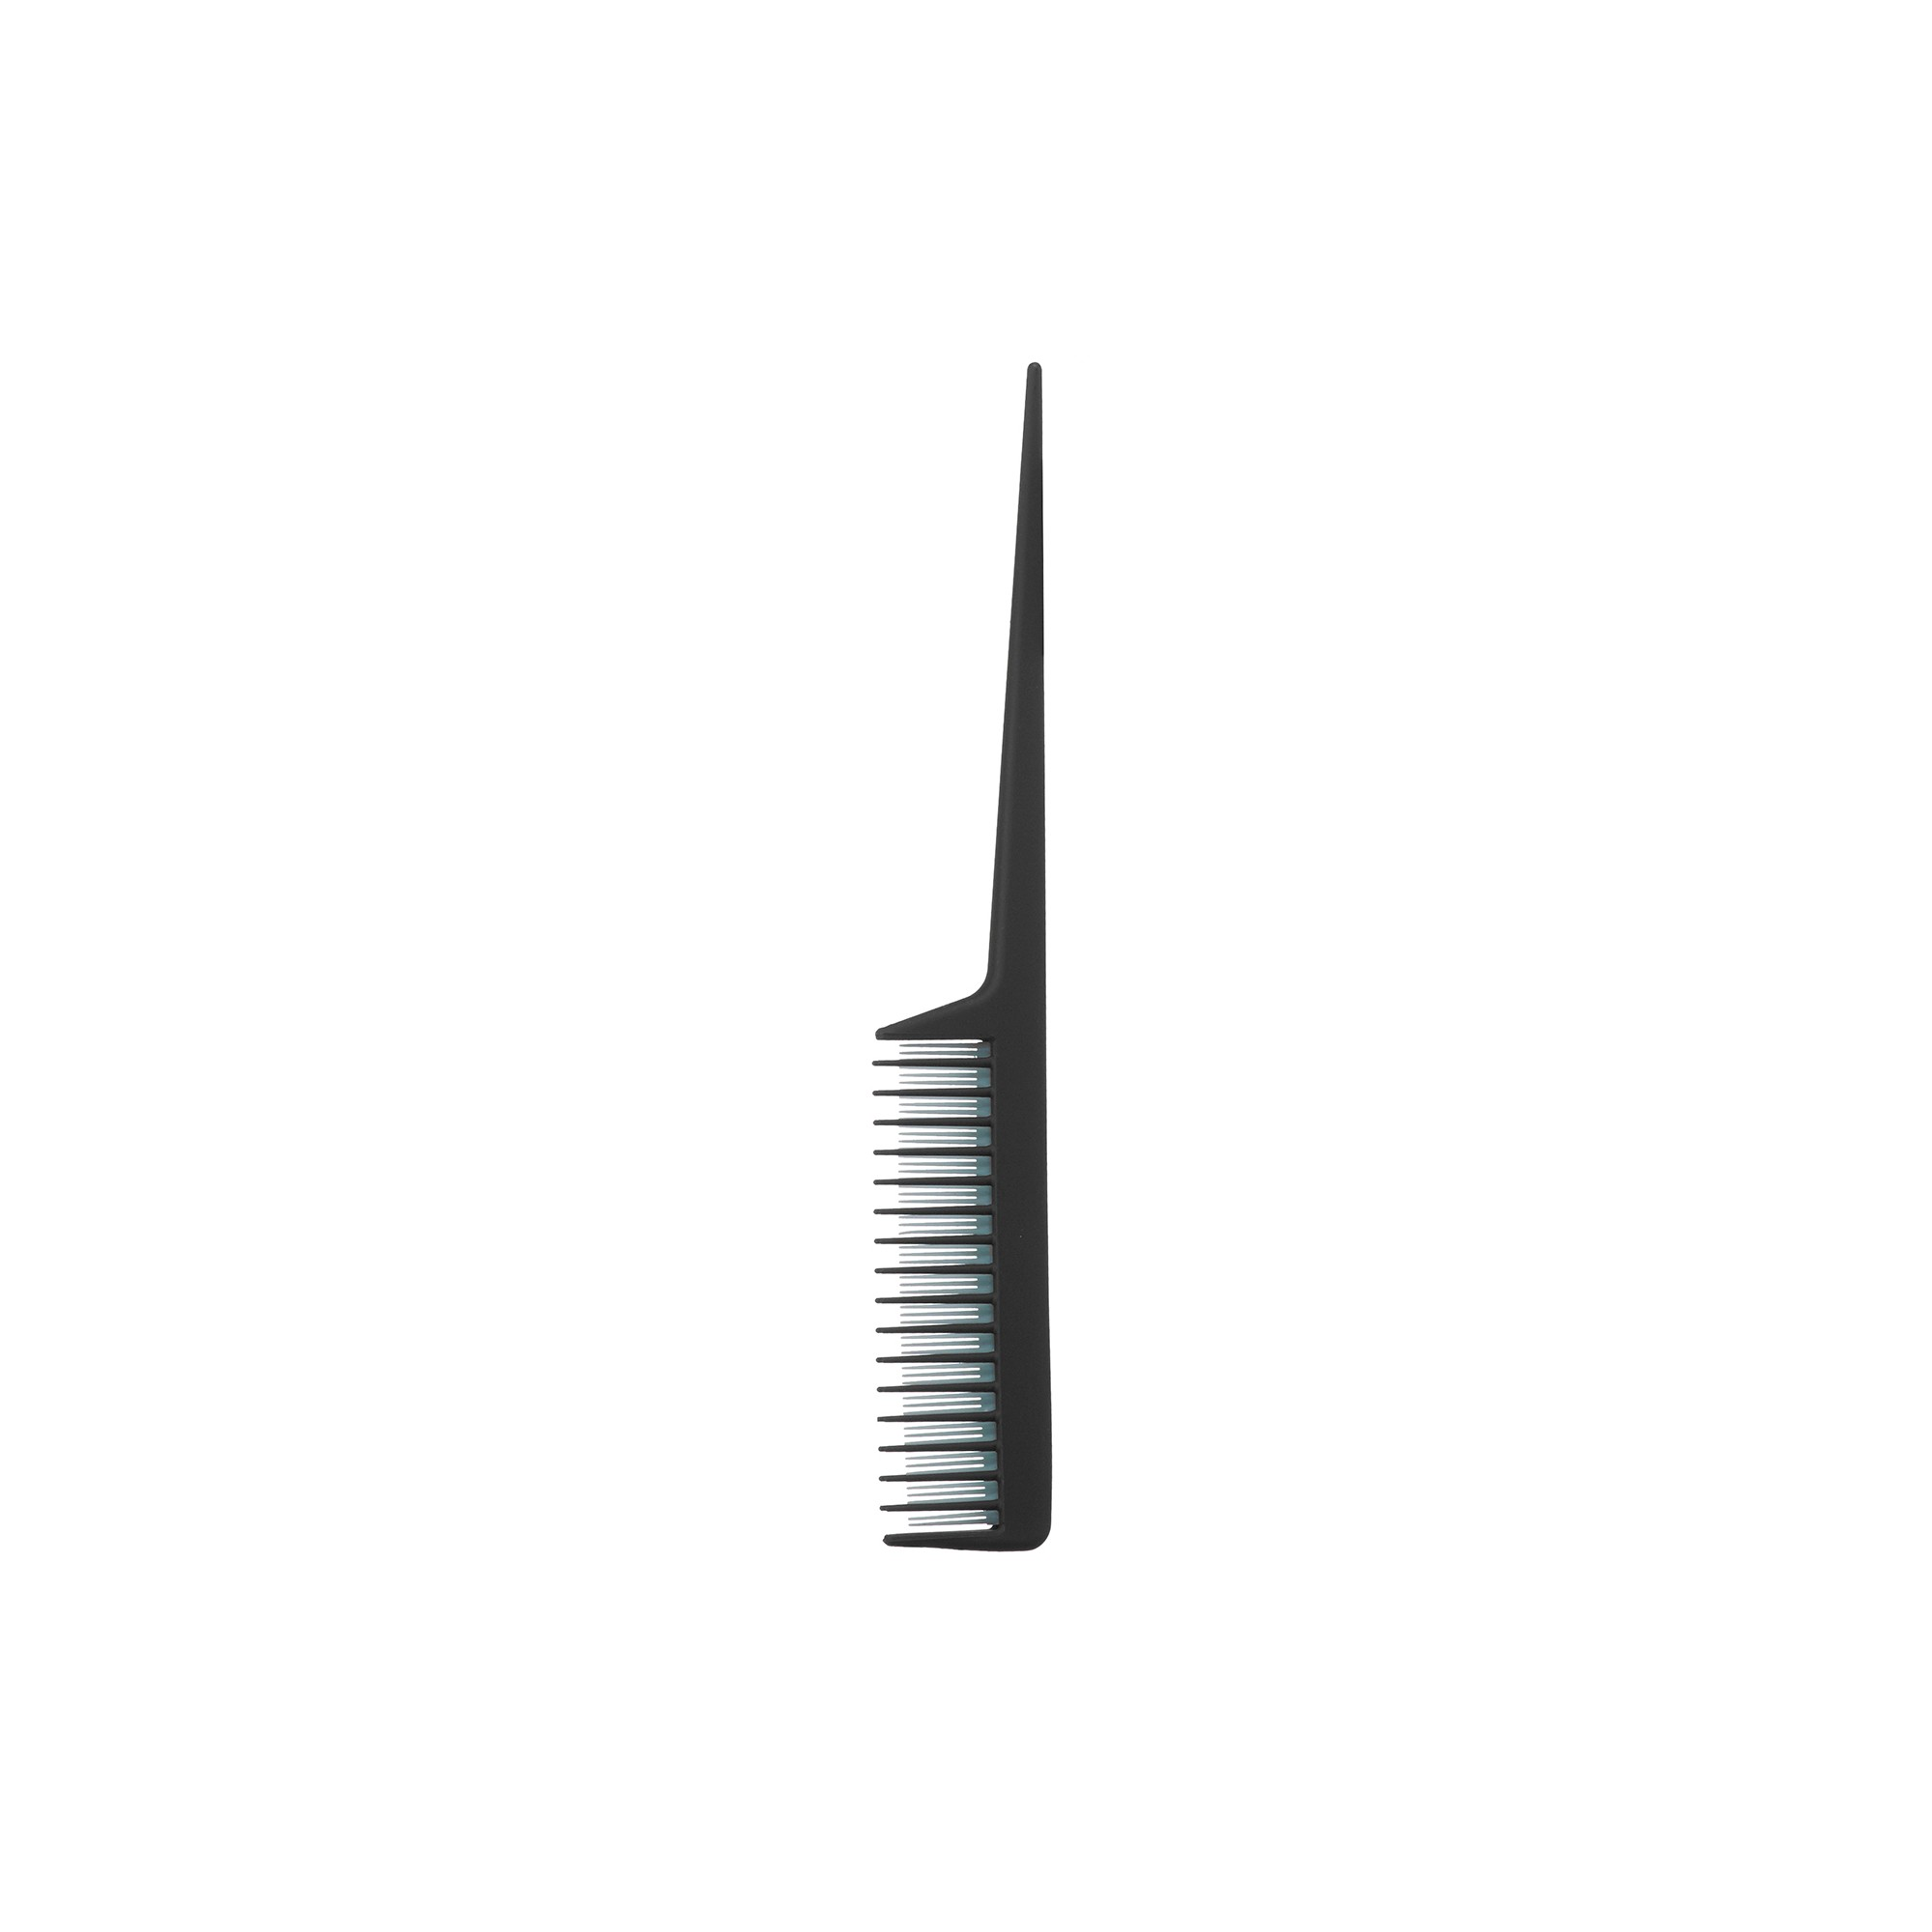 Conair Lift & Tease Style Soft-Touch Comb, Black